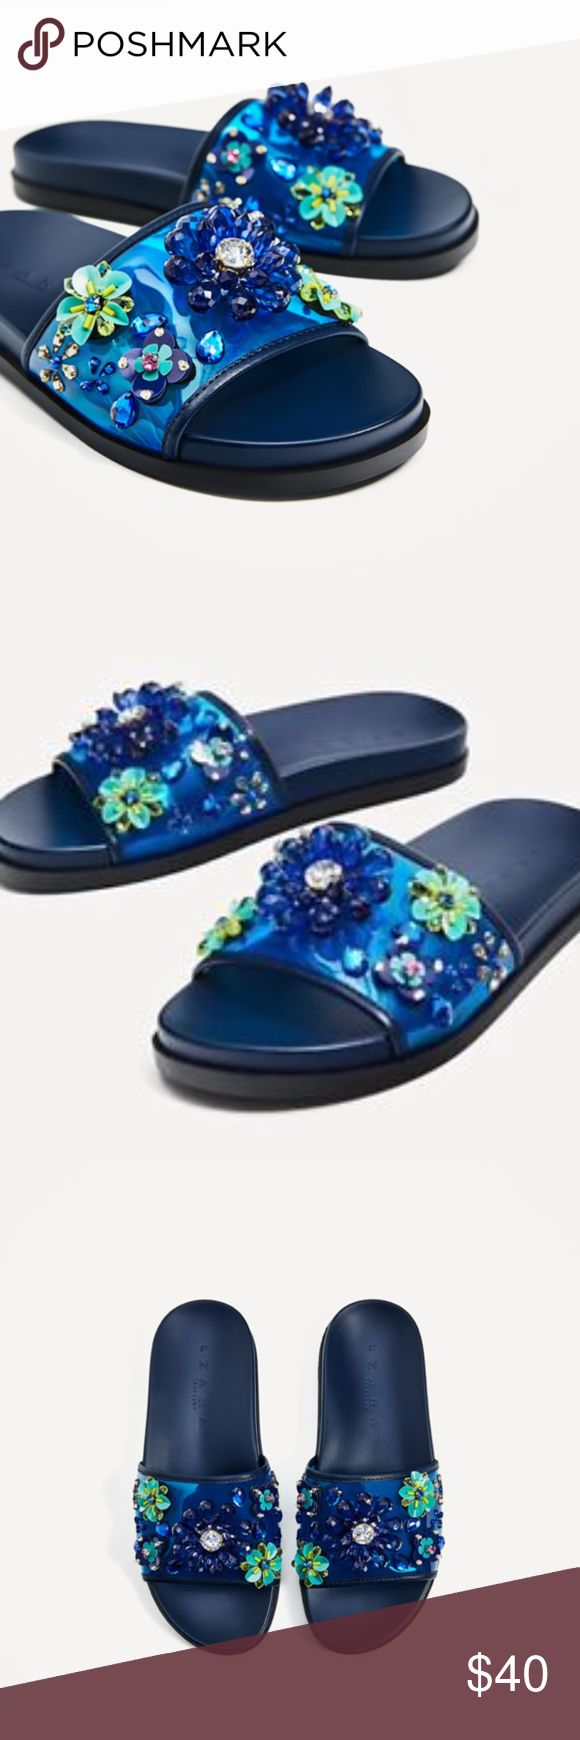 Zara Blue Floral Beaded Slides Flip Flop Slippers Size: EUR 36 US 6  Condition: New without tags, no signs of wear, no flaws or damages  Delivery: P2 Zara Shoes Slippers